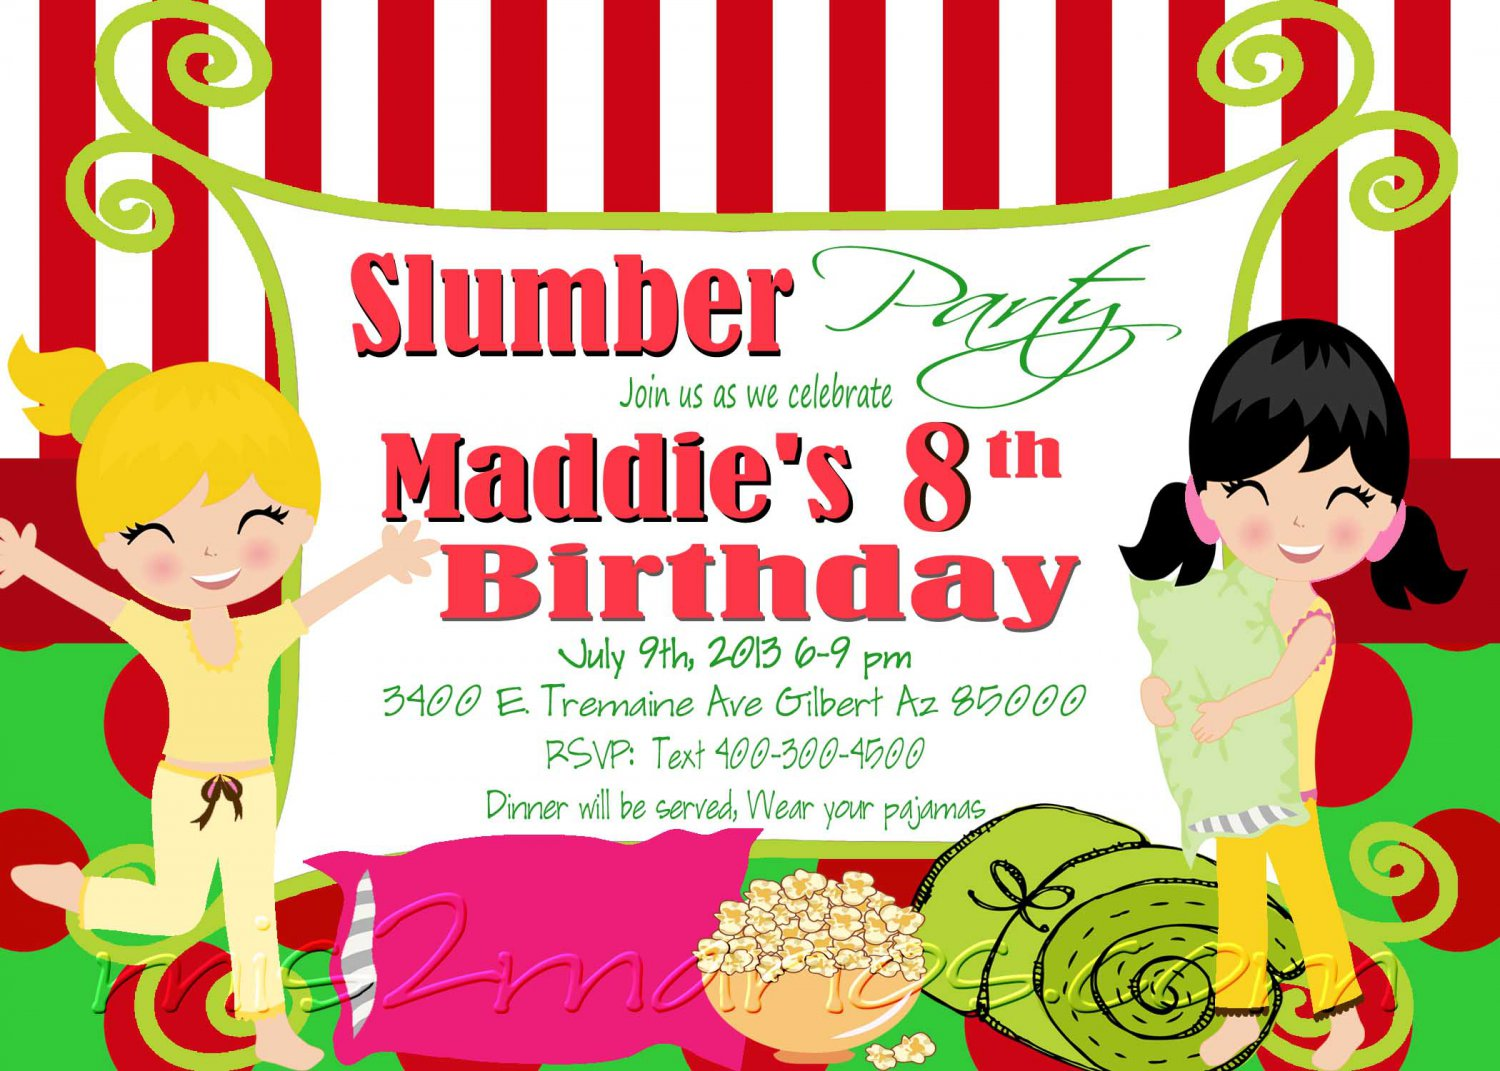 Slumber party invitation sleepover invite birthday party girls slumber party invitation sleepover invite birthday party girls printable diy christmas invitation stopboris Image collections